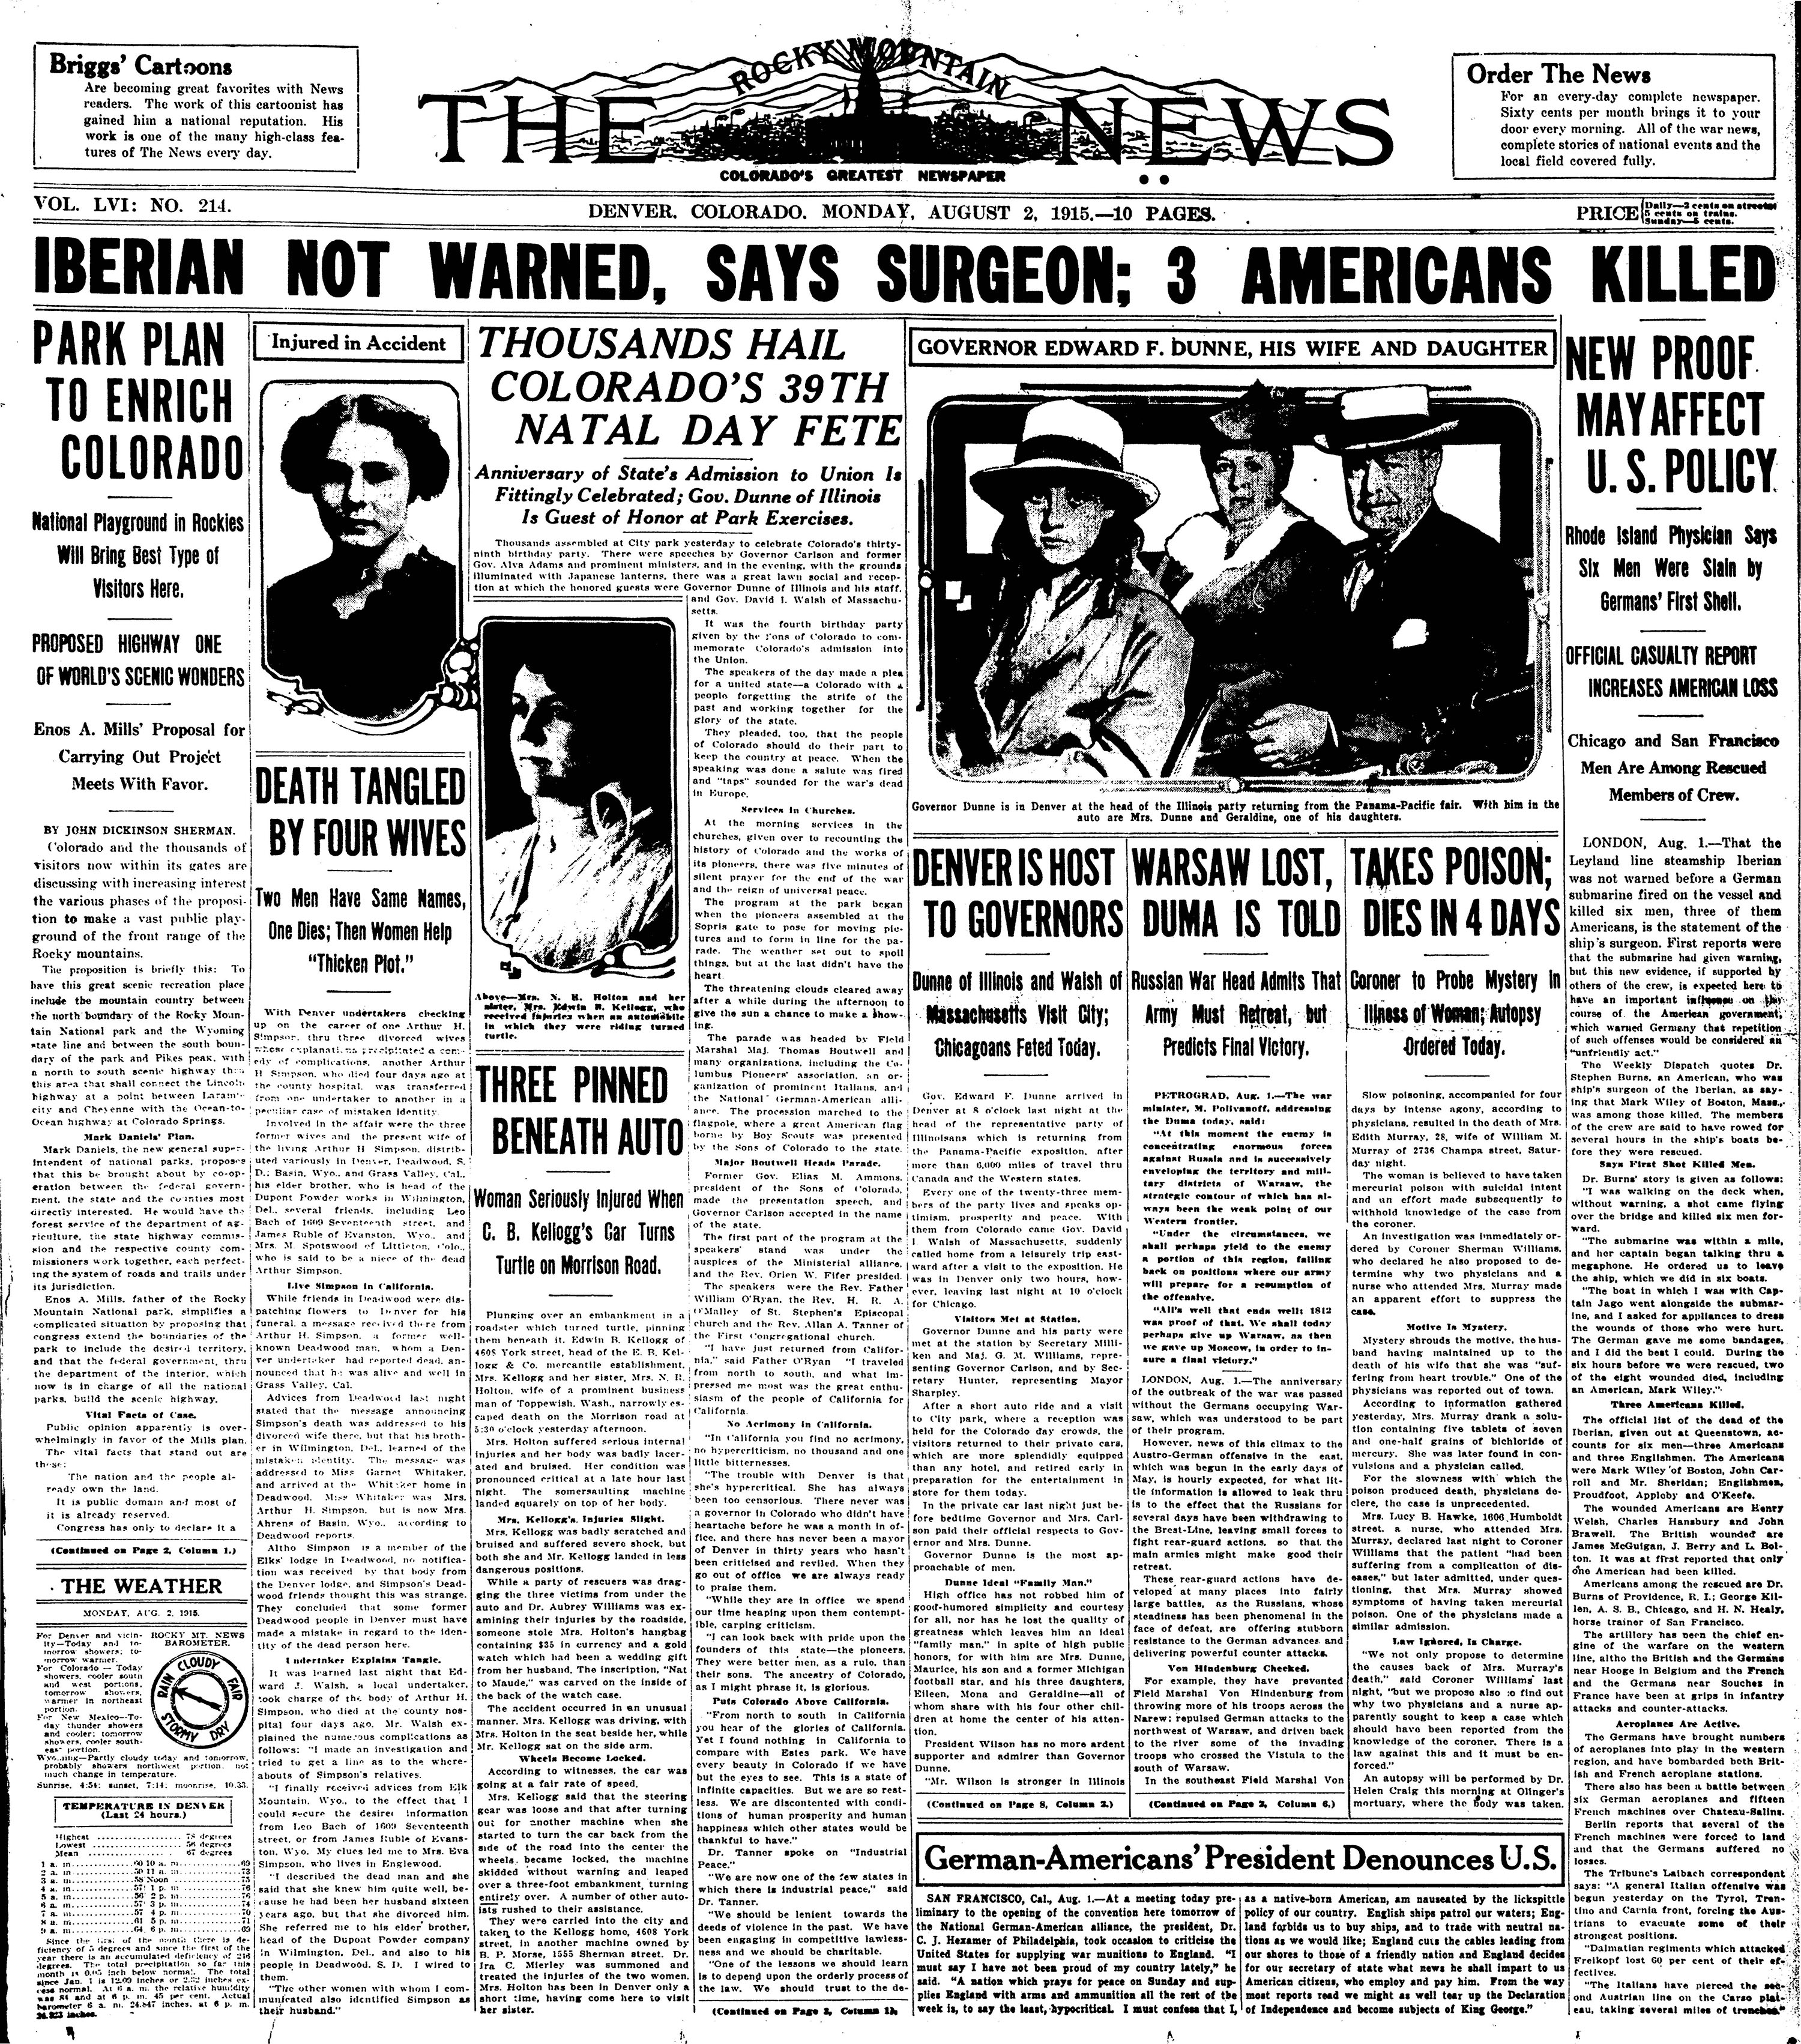 Rocky Mountain News August 2, 1915